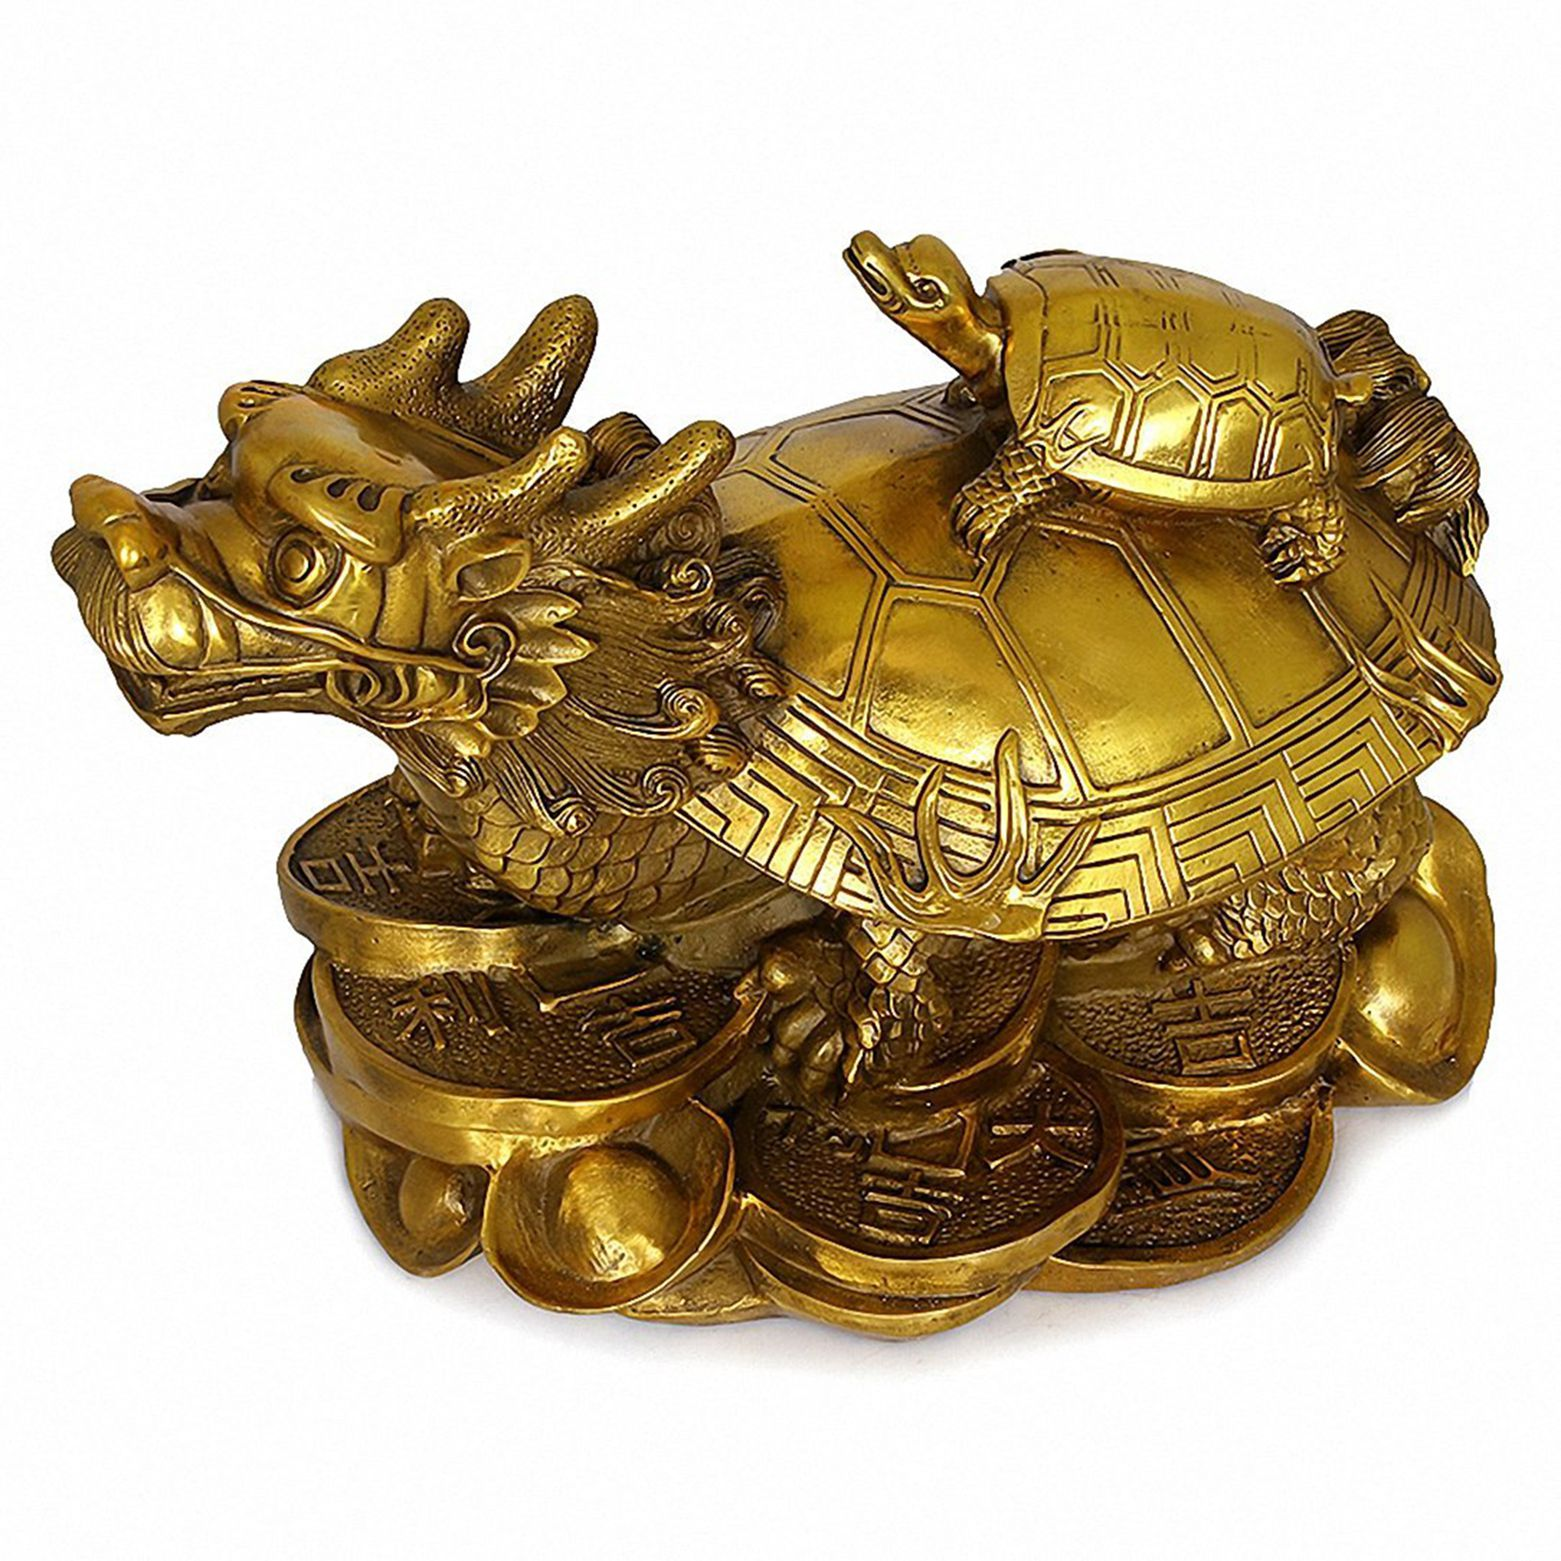 Feng Shui Use Of Dragon Turtles